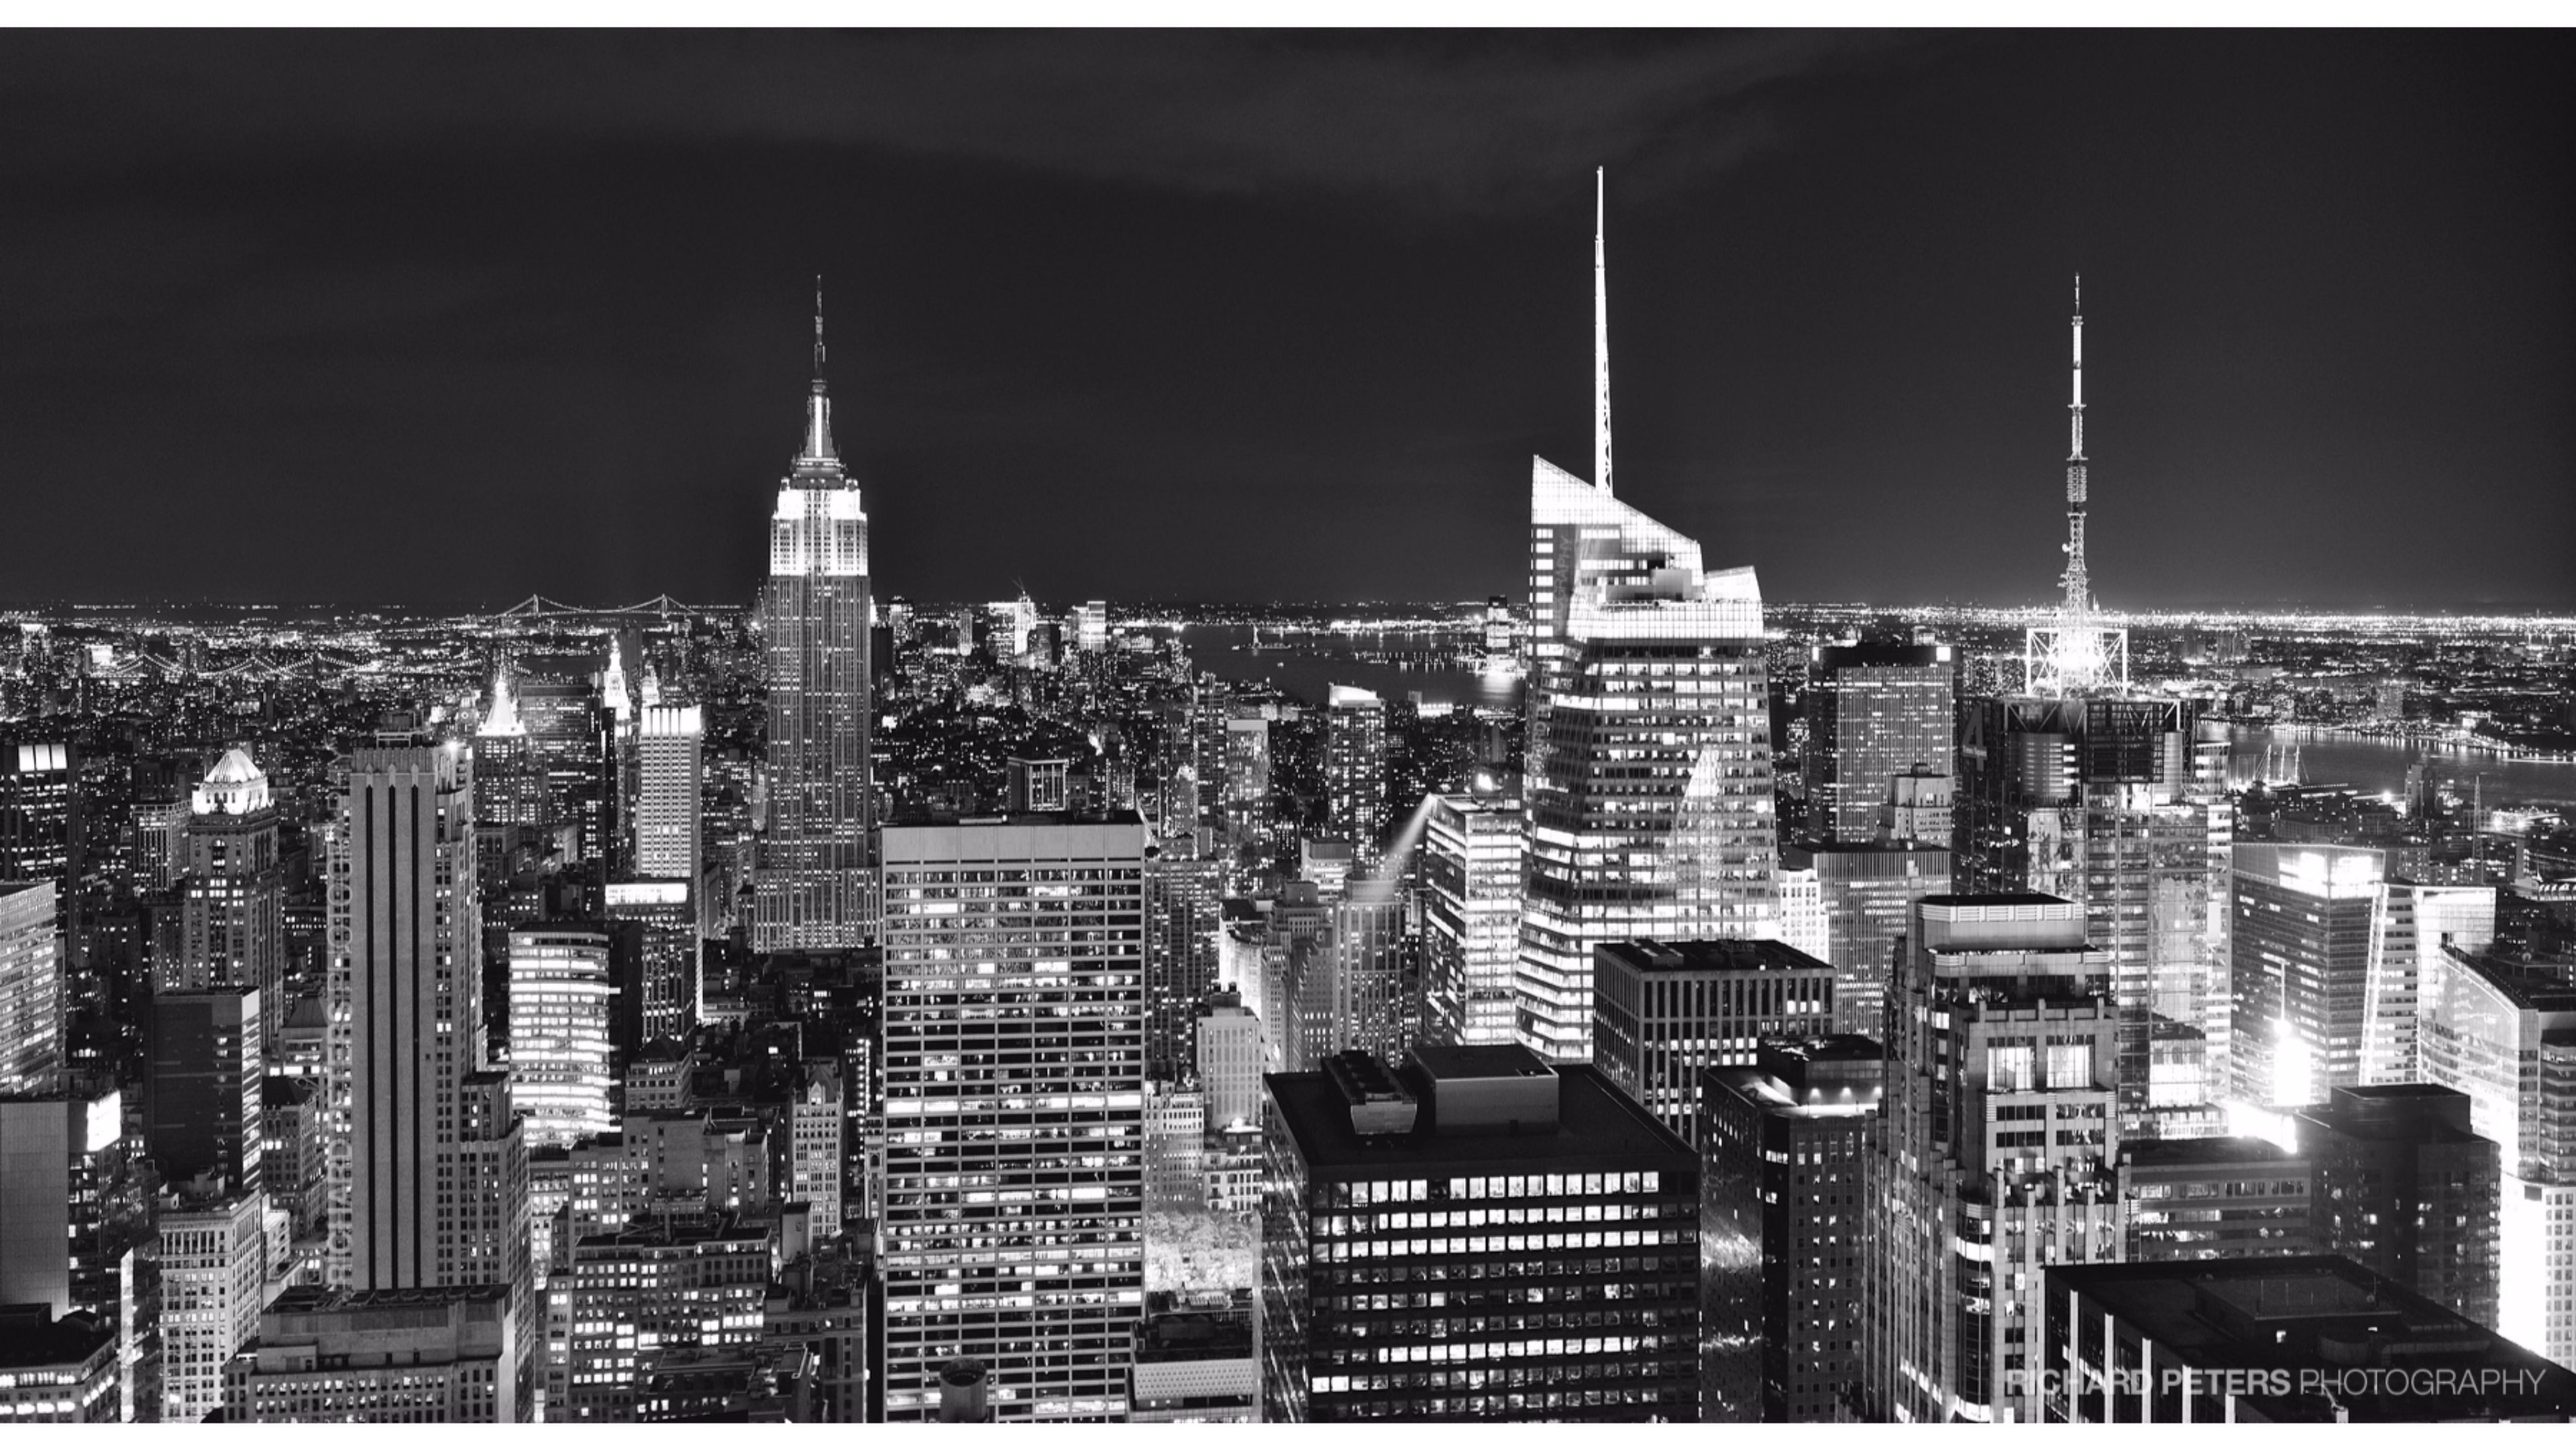 3840x2160 Black and White Nyc Skyline Wallpaper Magnificent New New York City Black  and White Wallpaper •